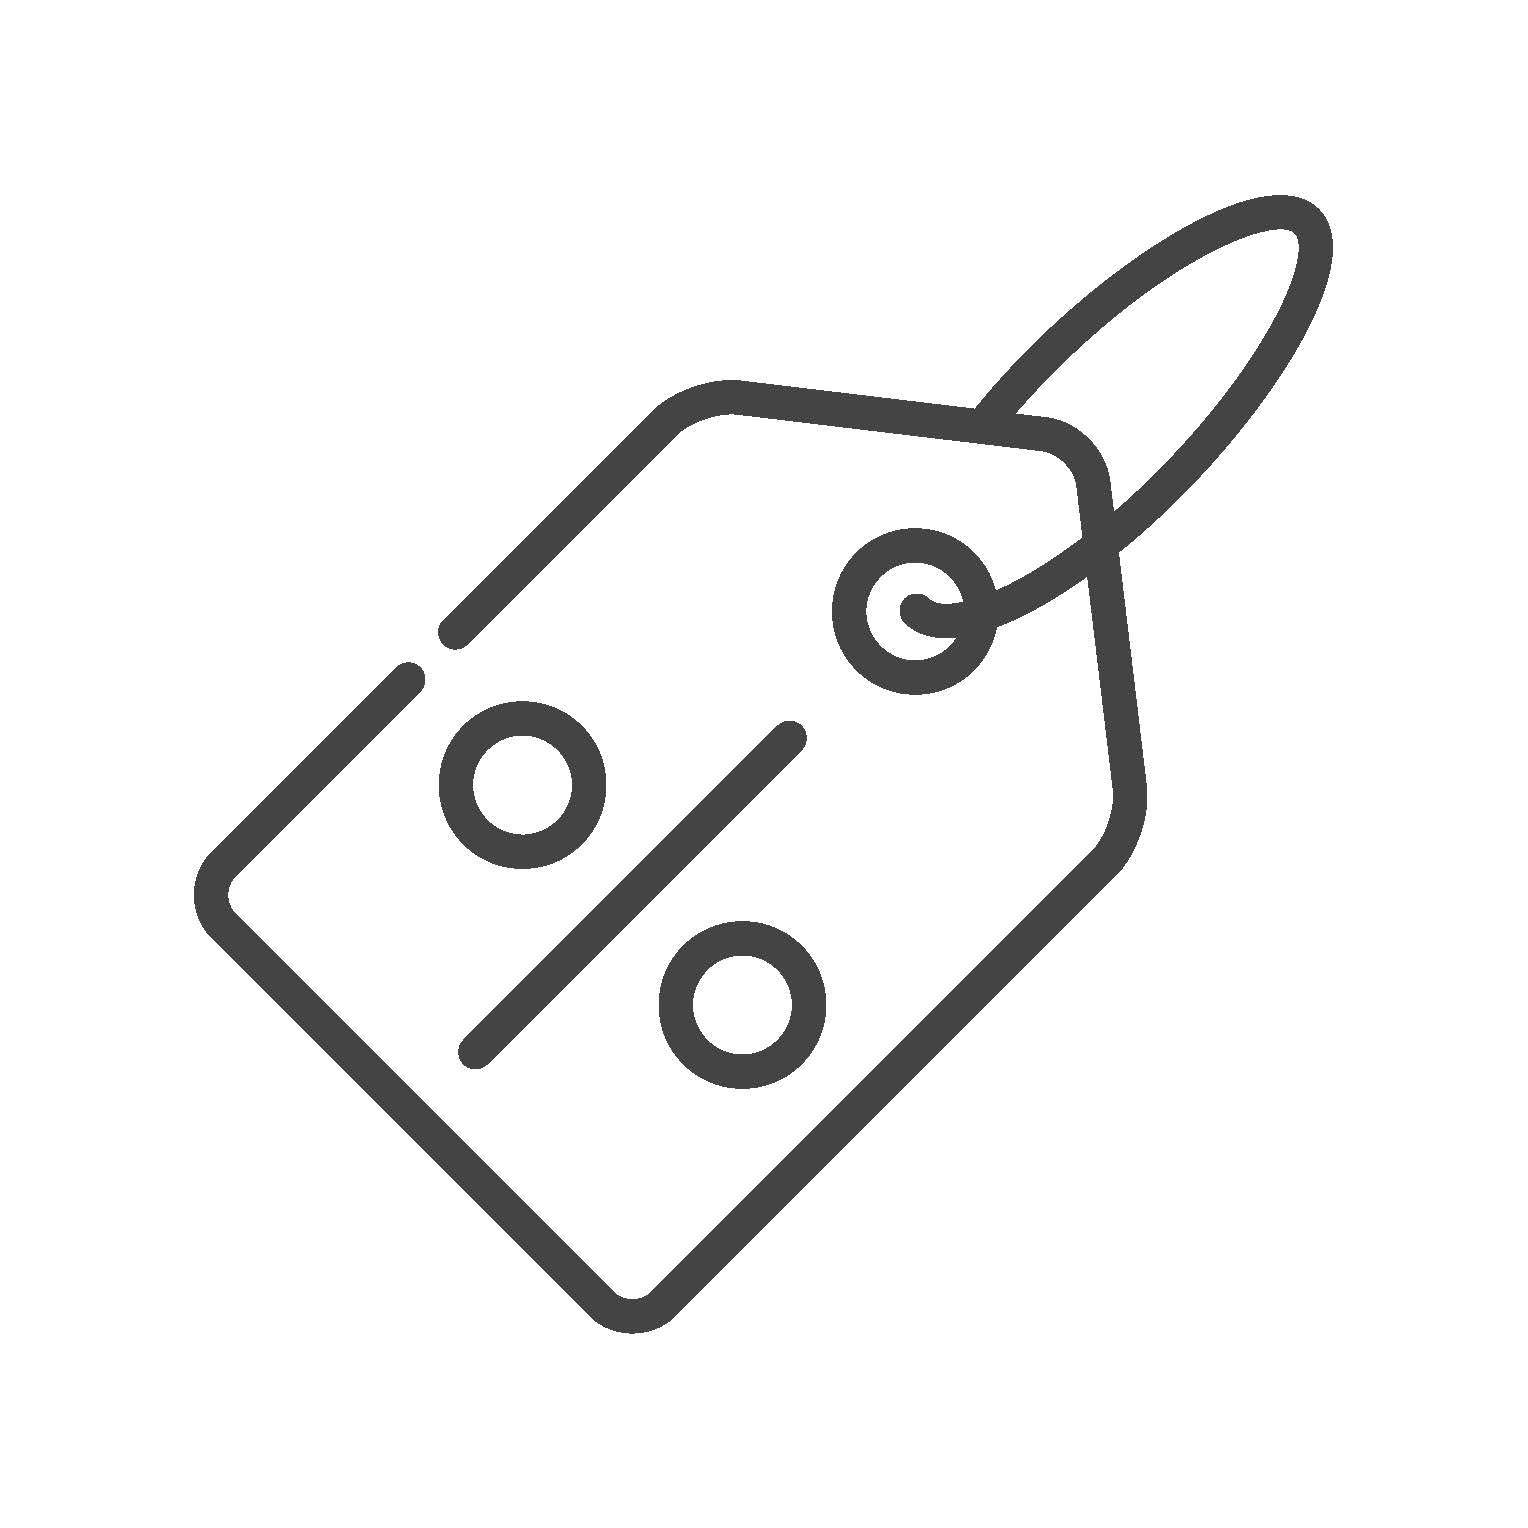 Tag icon design by Freepik from Flaticon